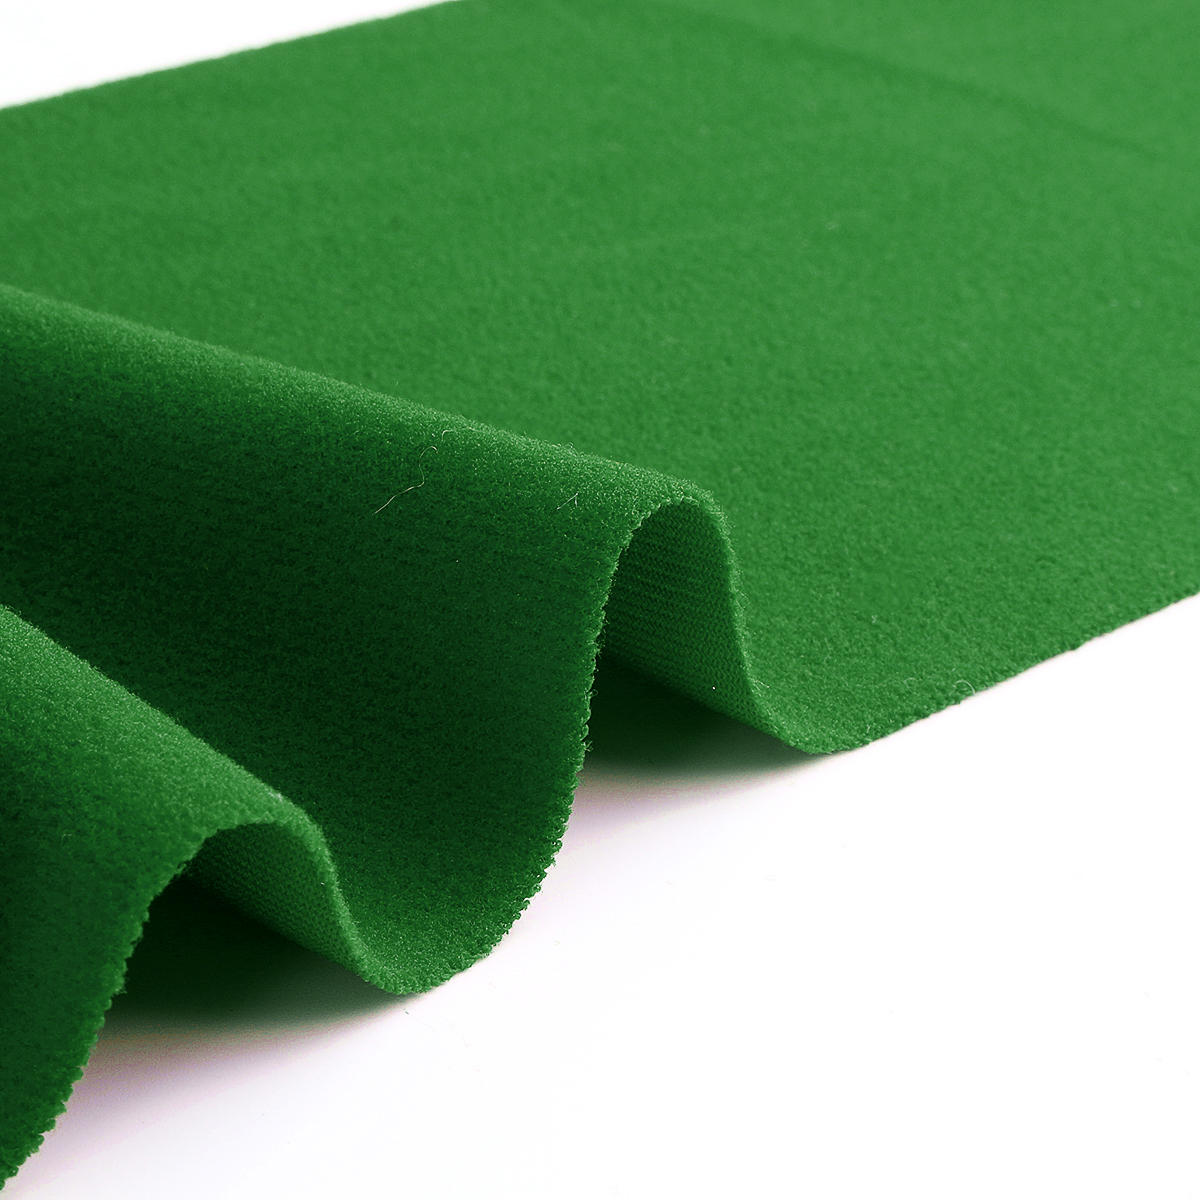 SportsBarn Replacement Felt Cloth For Pool Billiard or Snooker Table -- 6Pcs Green/Red 9.5x4.7ft